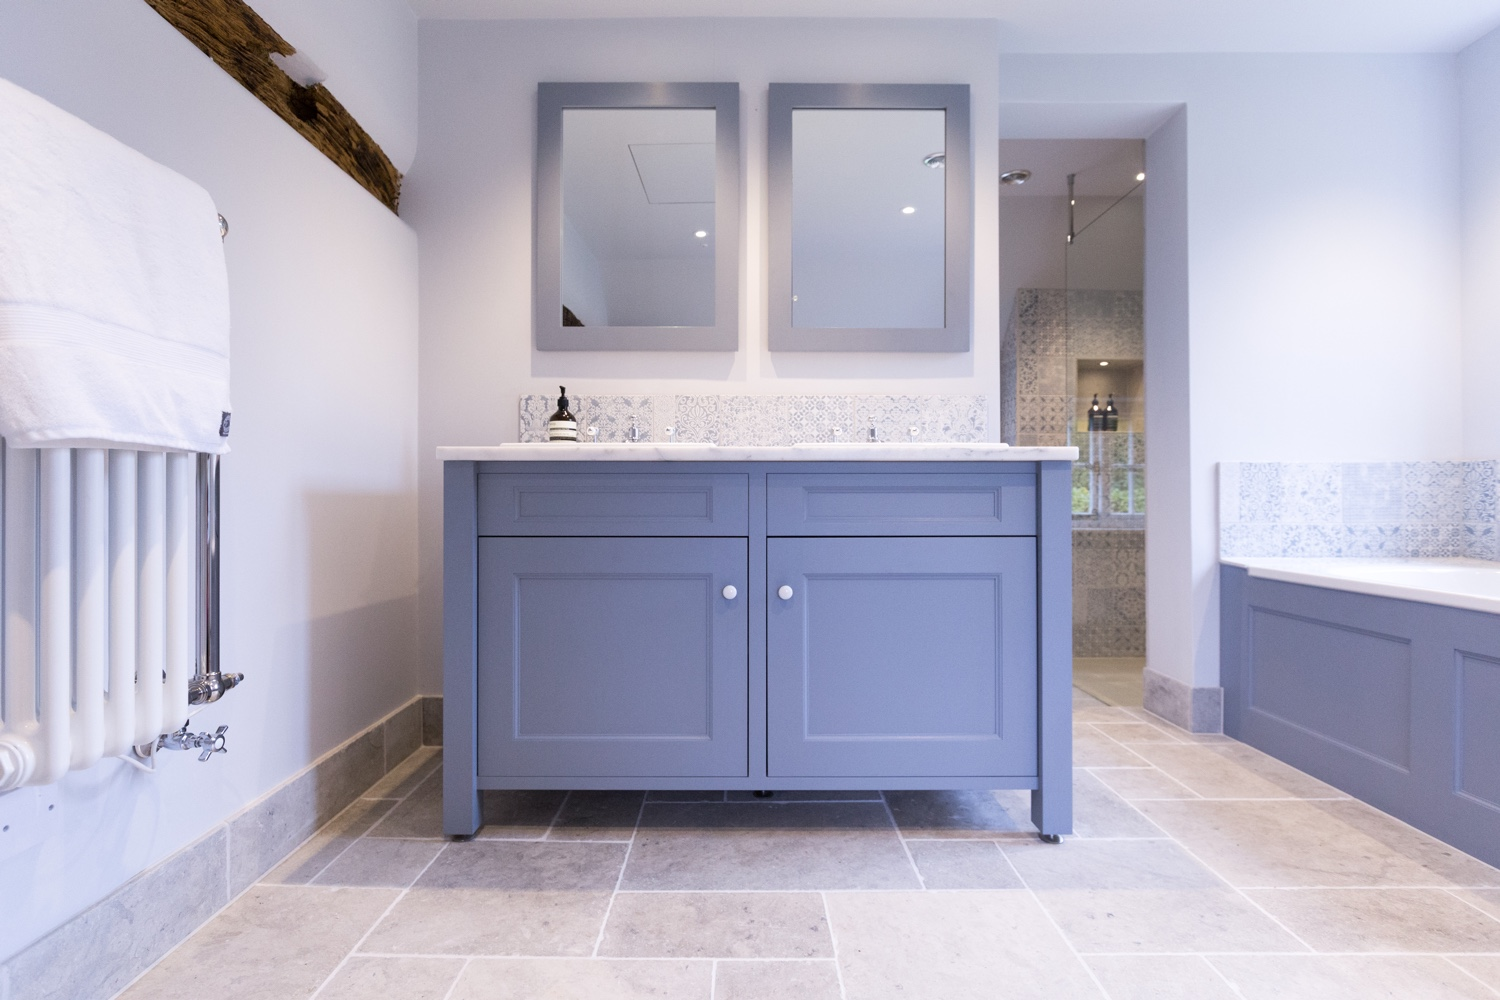 Jeremy colson bathrooms surrey for Pre manufactured cabinets